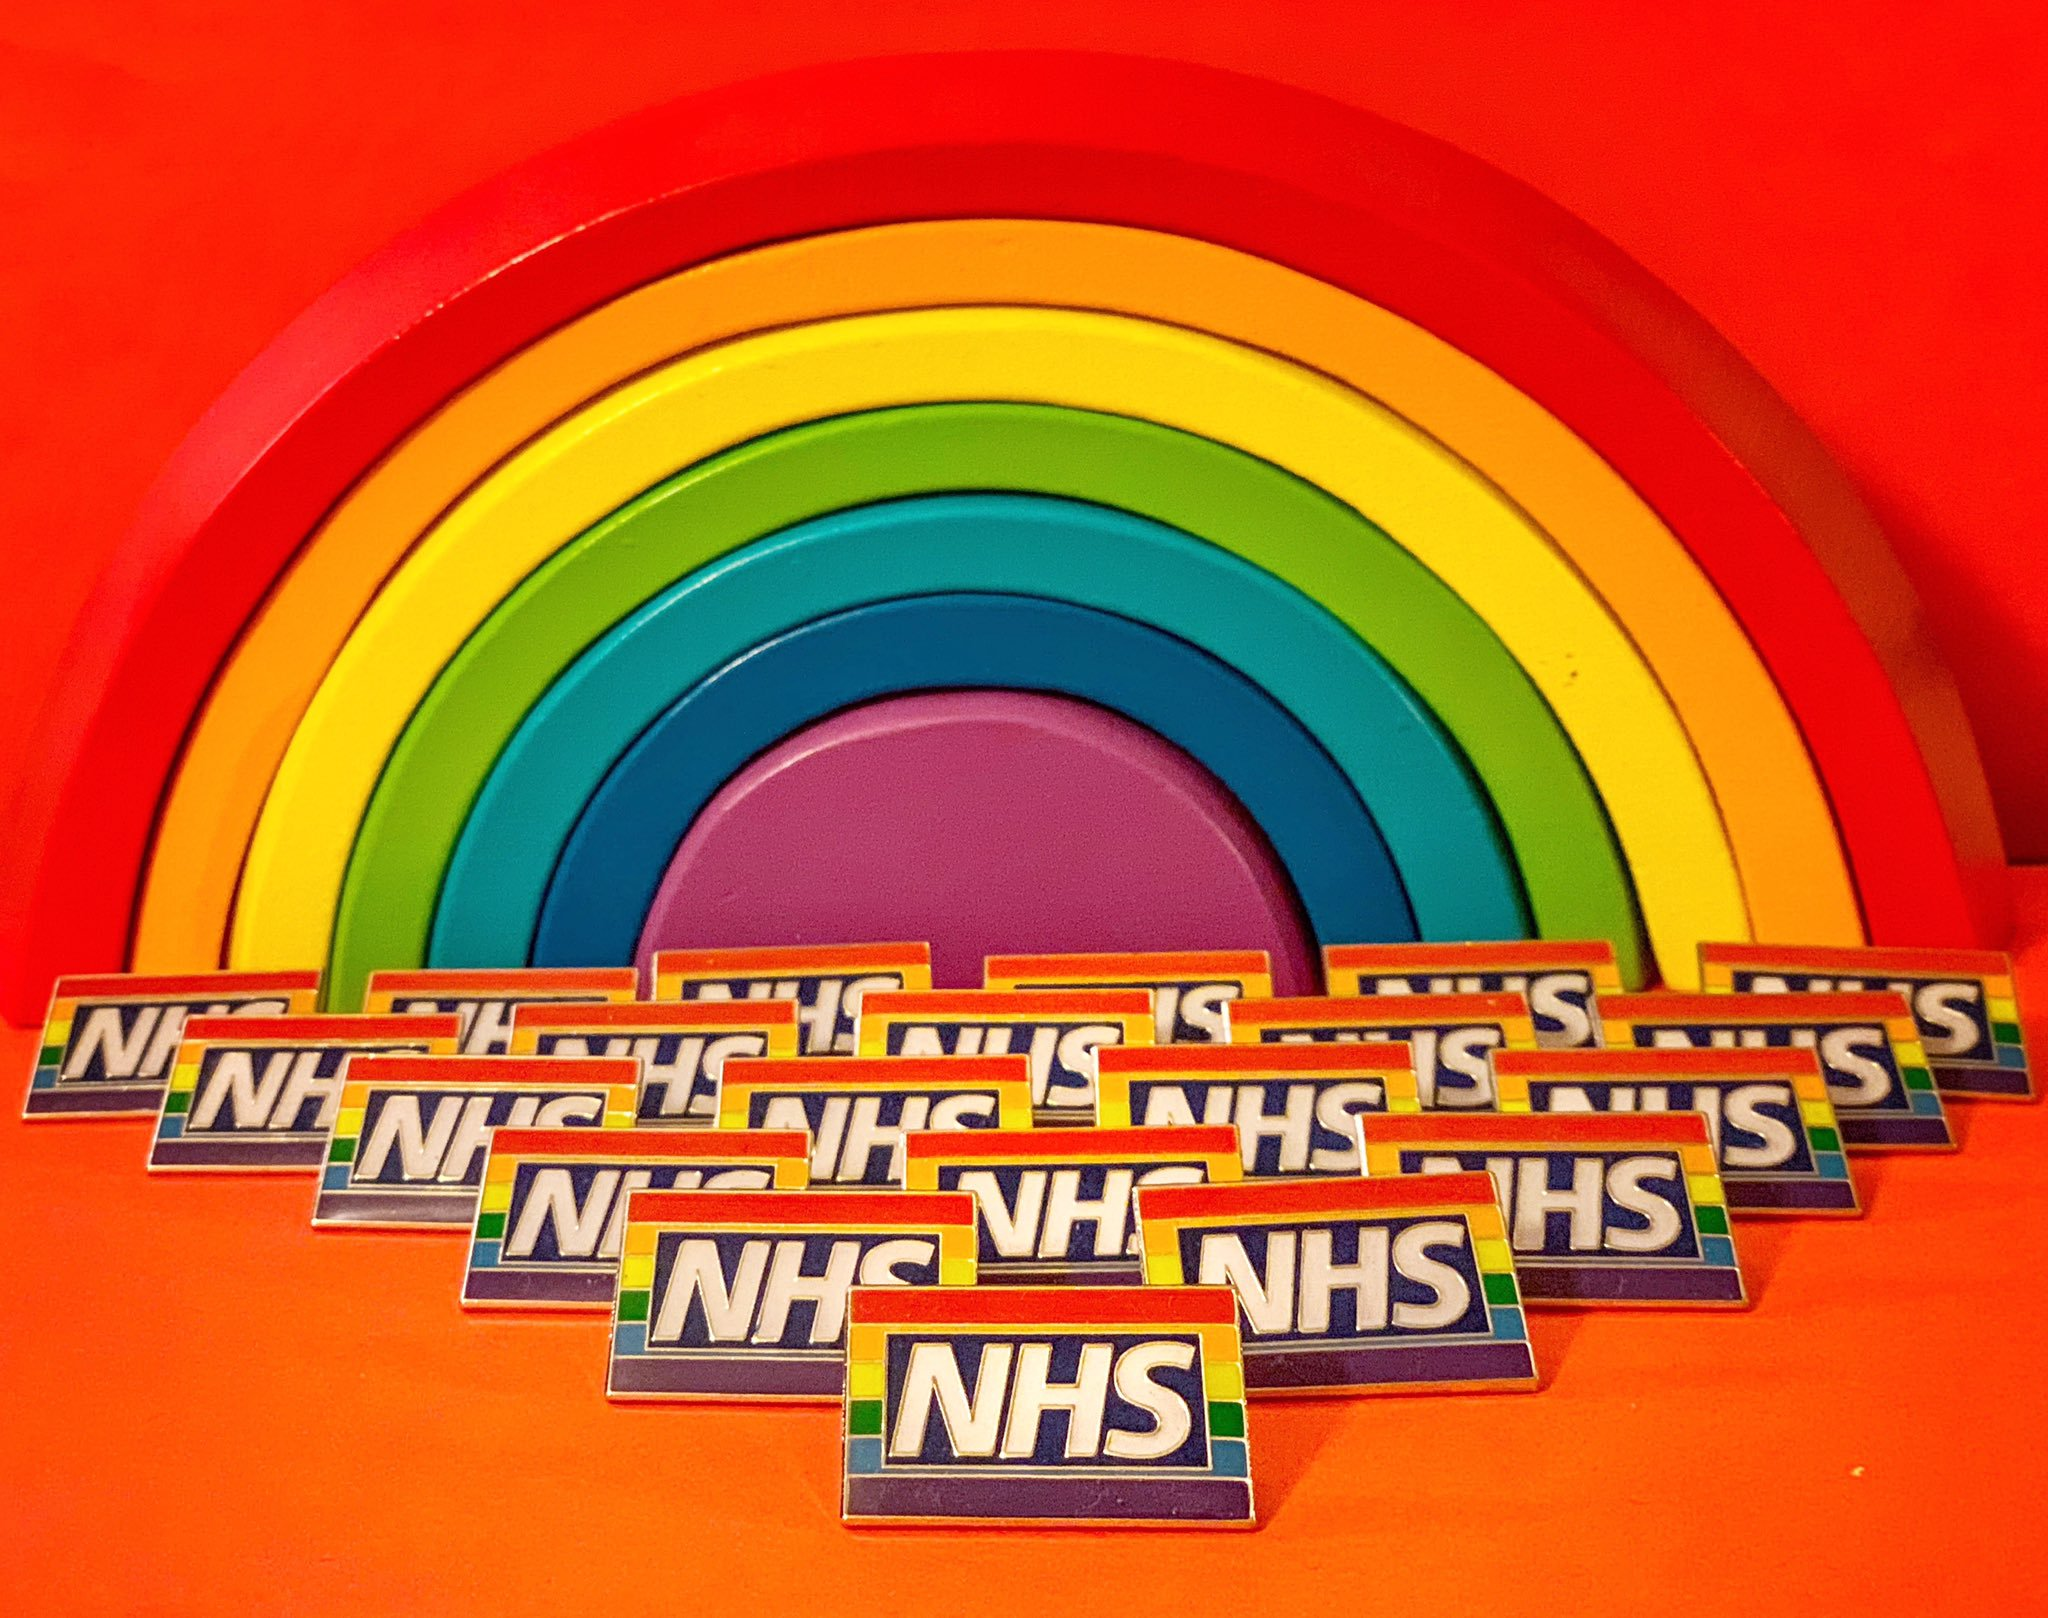 The Rainbow Badges serve to show the hospital is a non-judgemental and inclusive place. (@RainbowNHSBadge/Twitter)